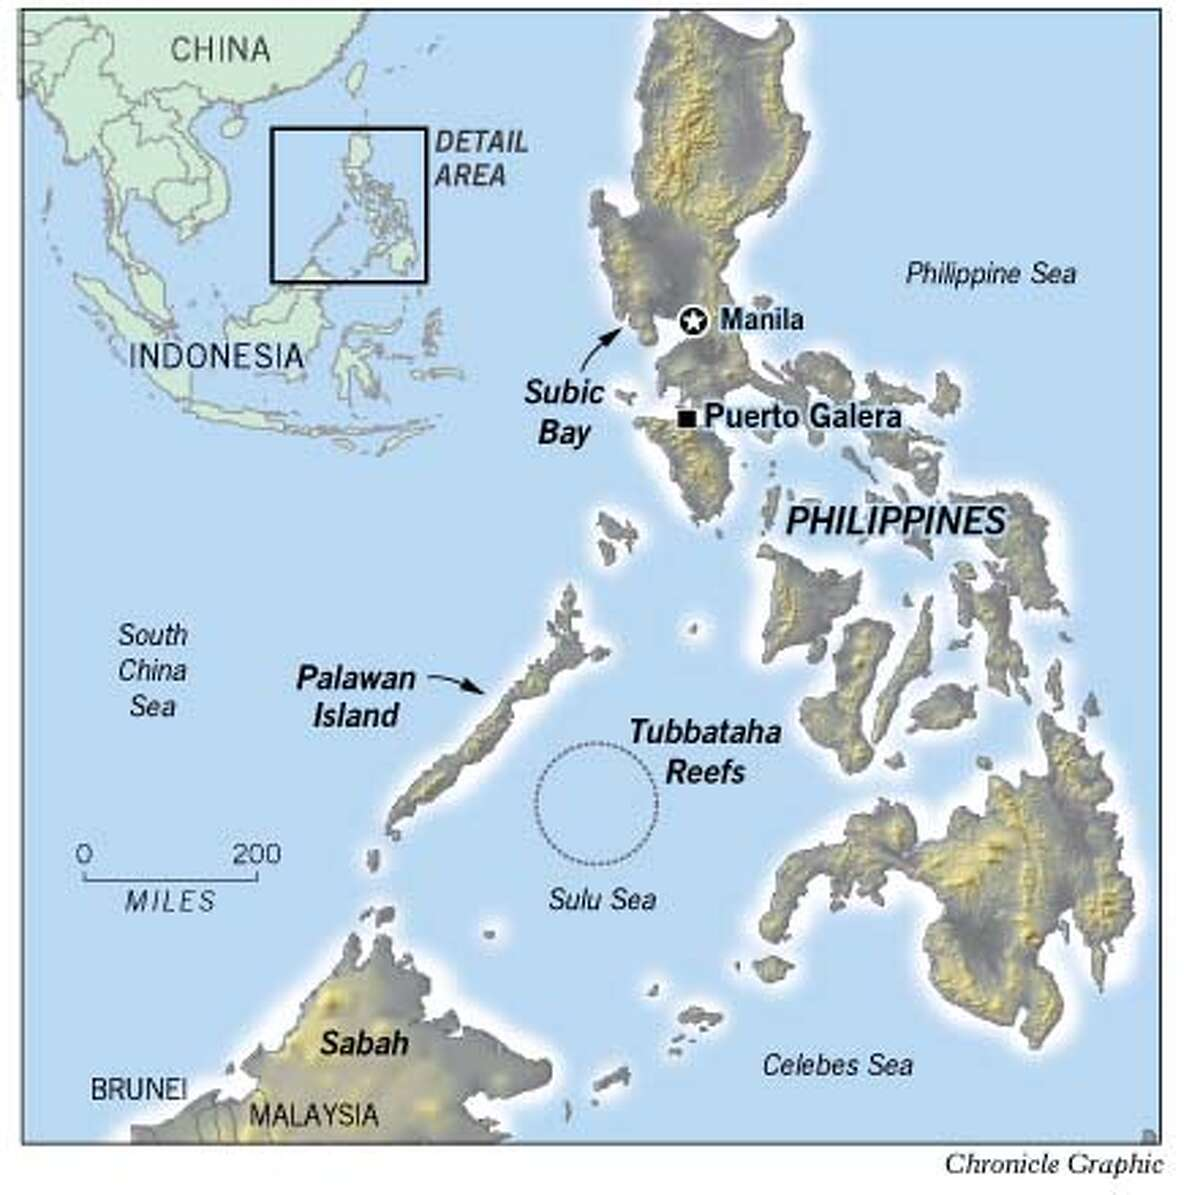 Philippines. Chronicle Graphic